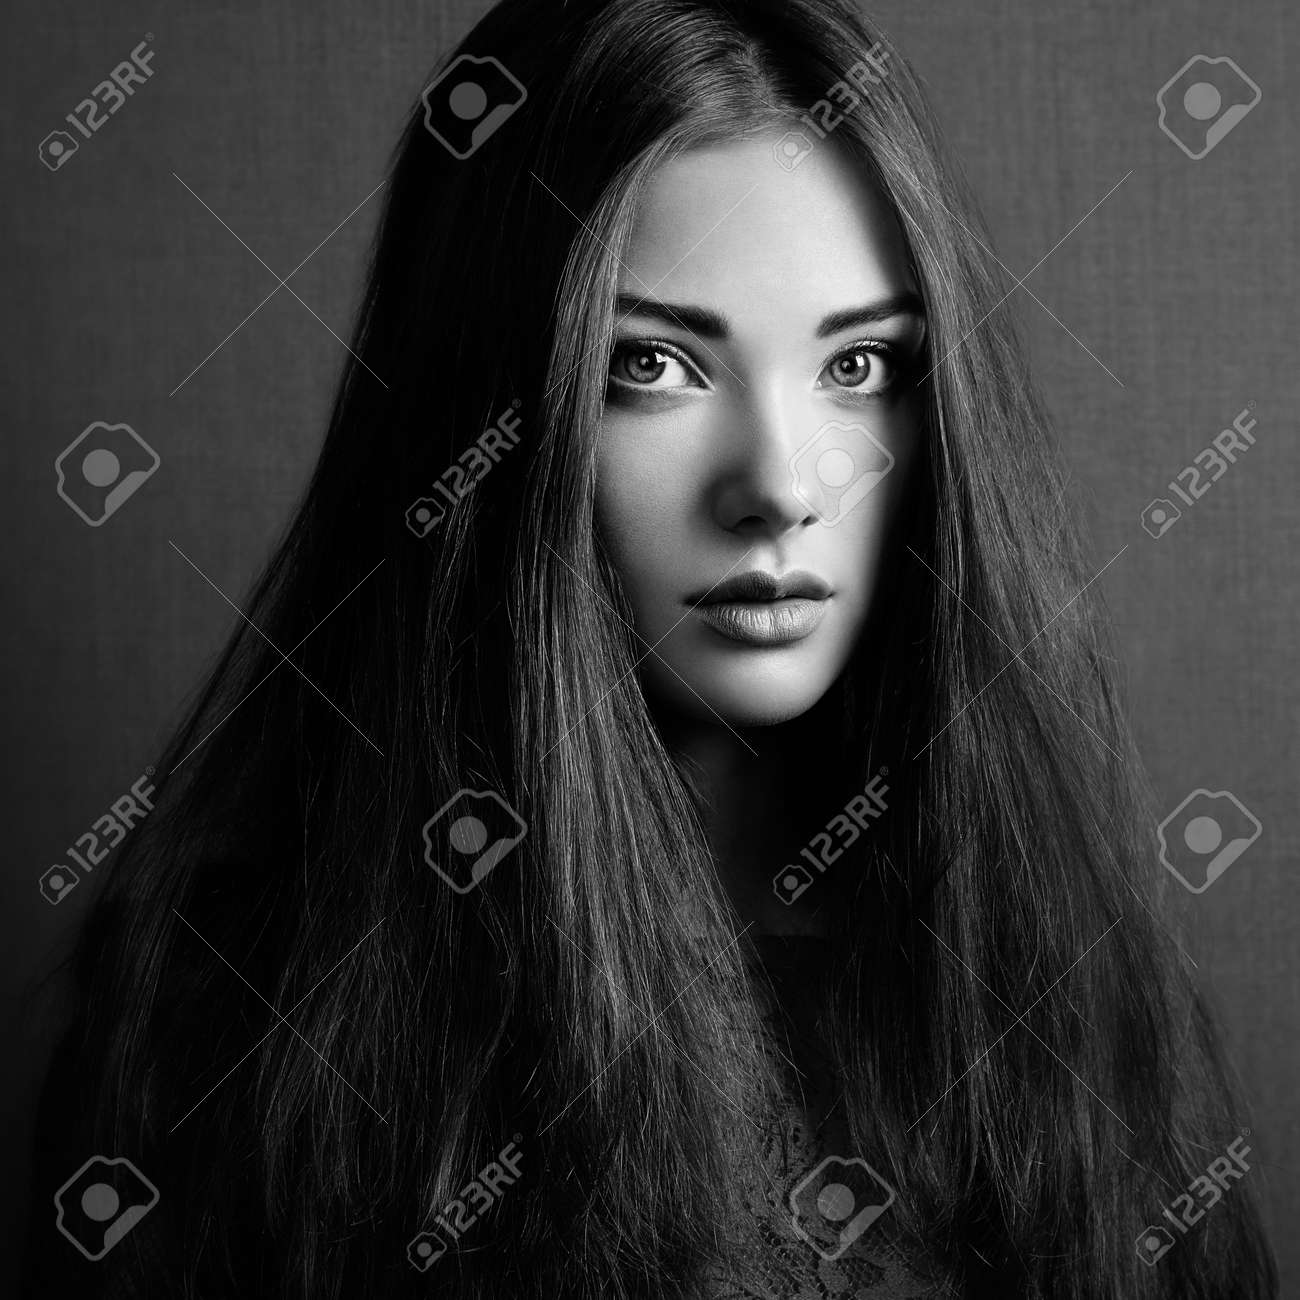 Portrait Of Beautiful Dark Haired Woman Close Up Beauty Photo Stock